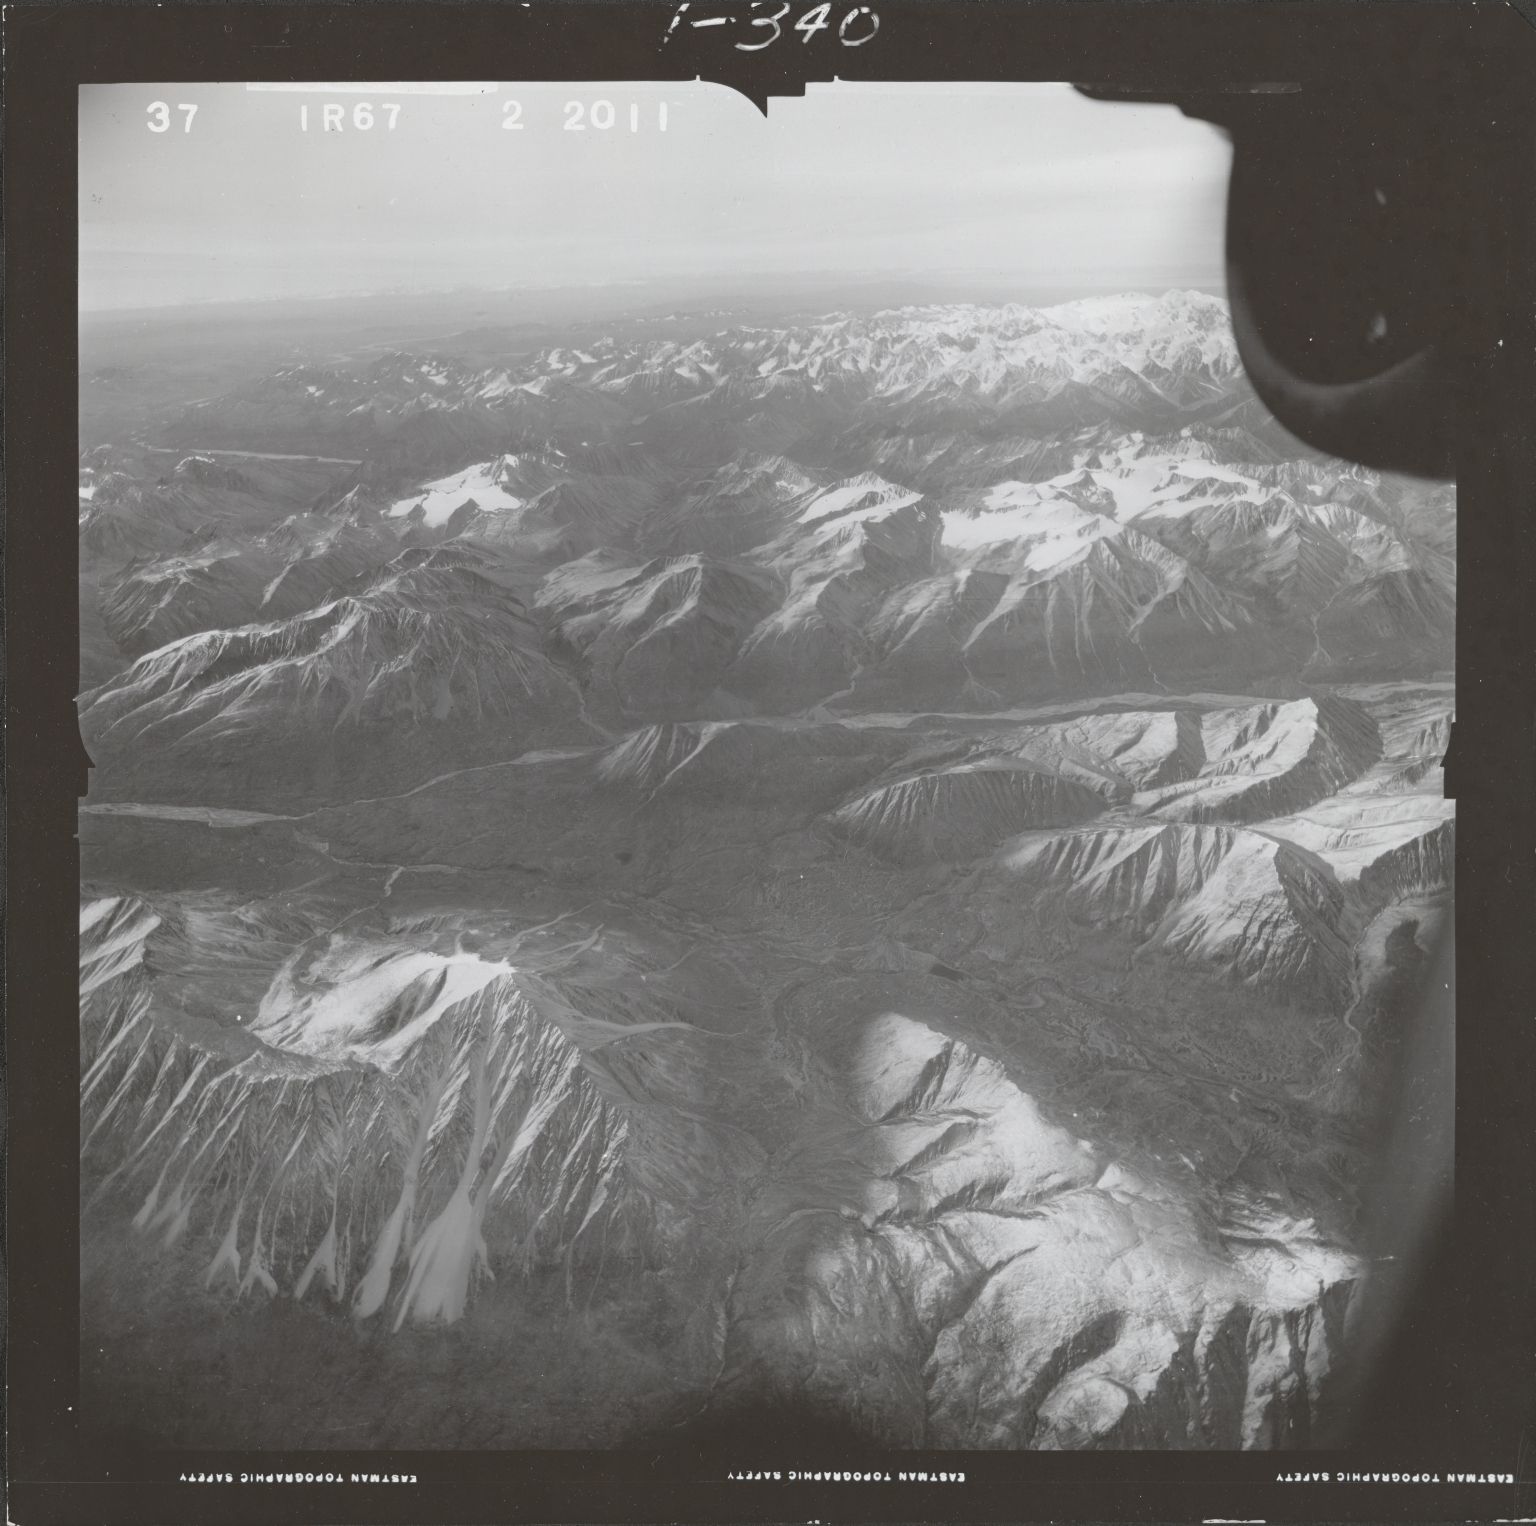 Northwest of Mount Gerdine, aerial photograph FL 68 R-67, Alaska